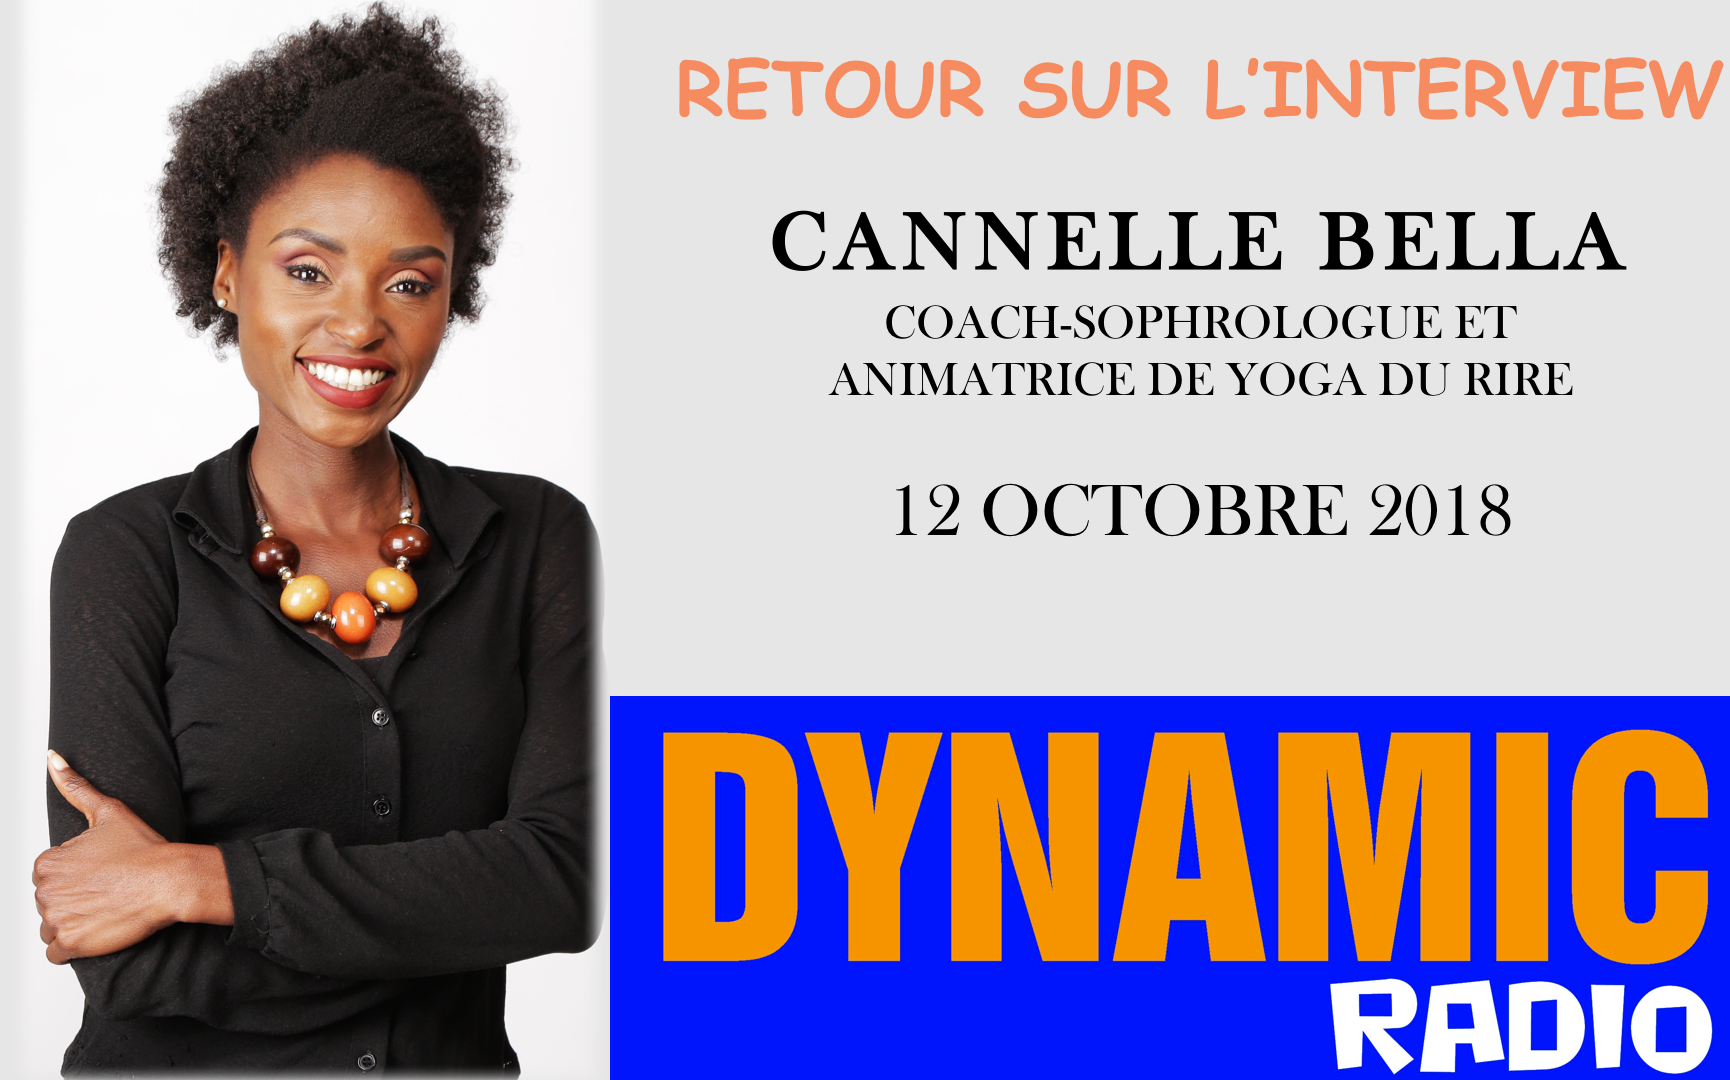 INTERVIEW RADIO - CANNELLE BELLA COACH-SOPHROLOGUE